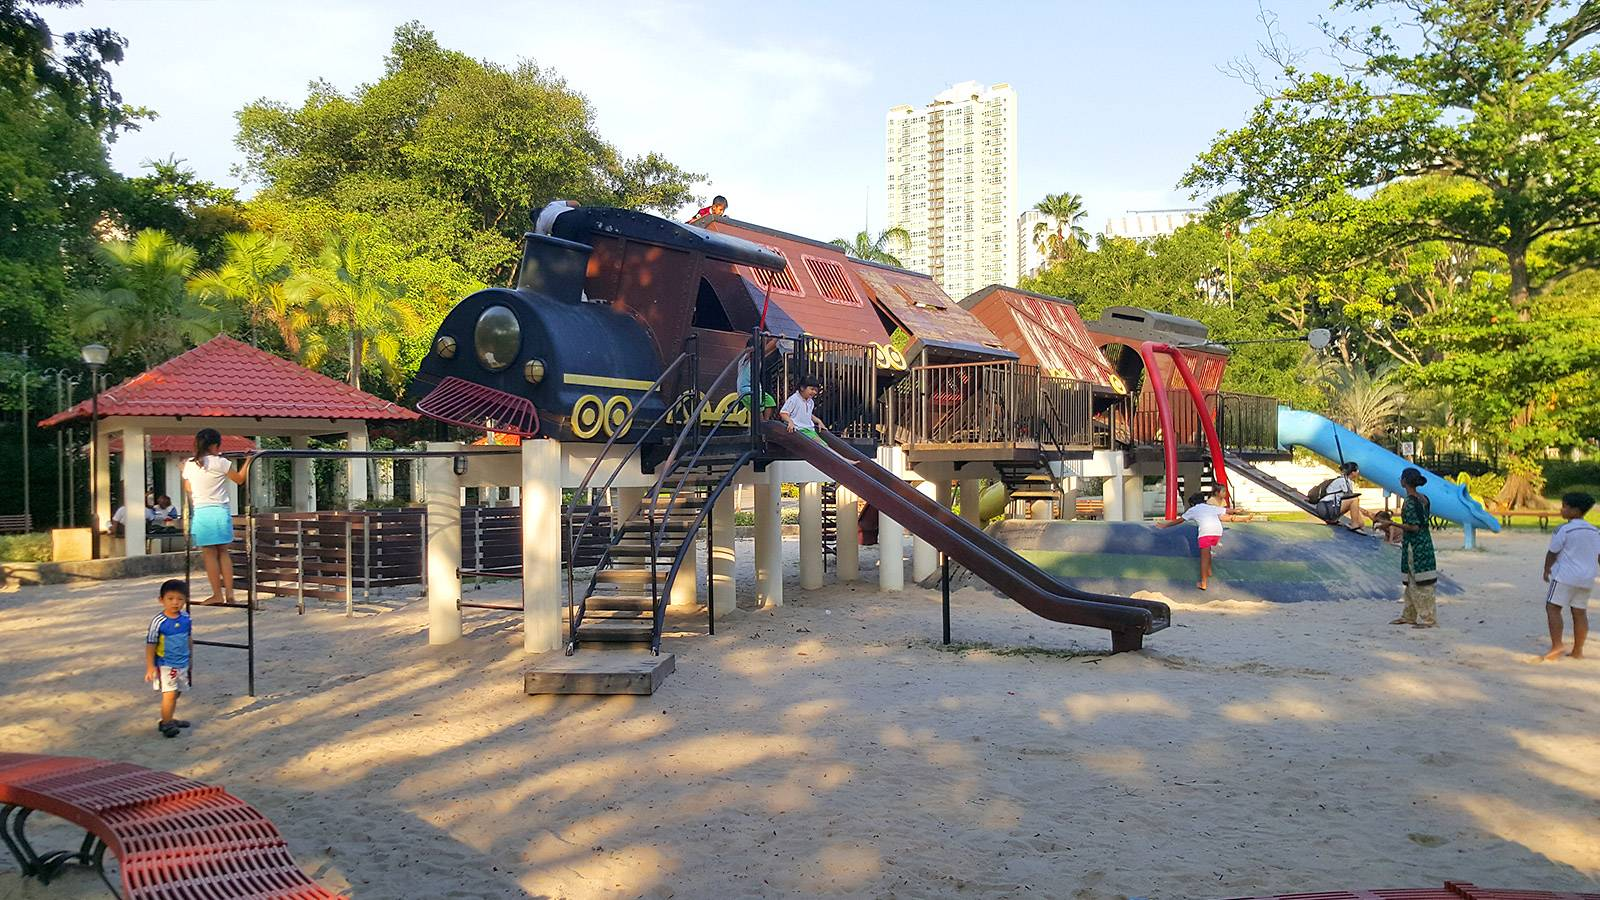 Tots-5-fab-and-free-playgrounds-junior-will-love-TIONG-BAHRU